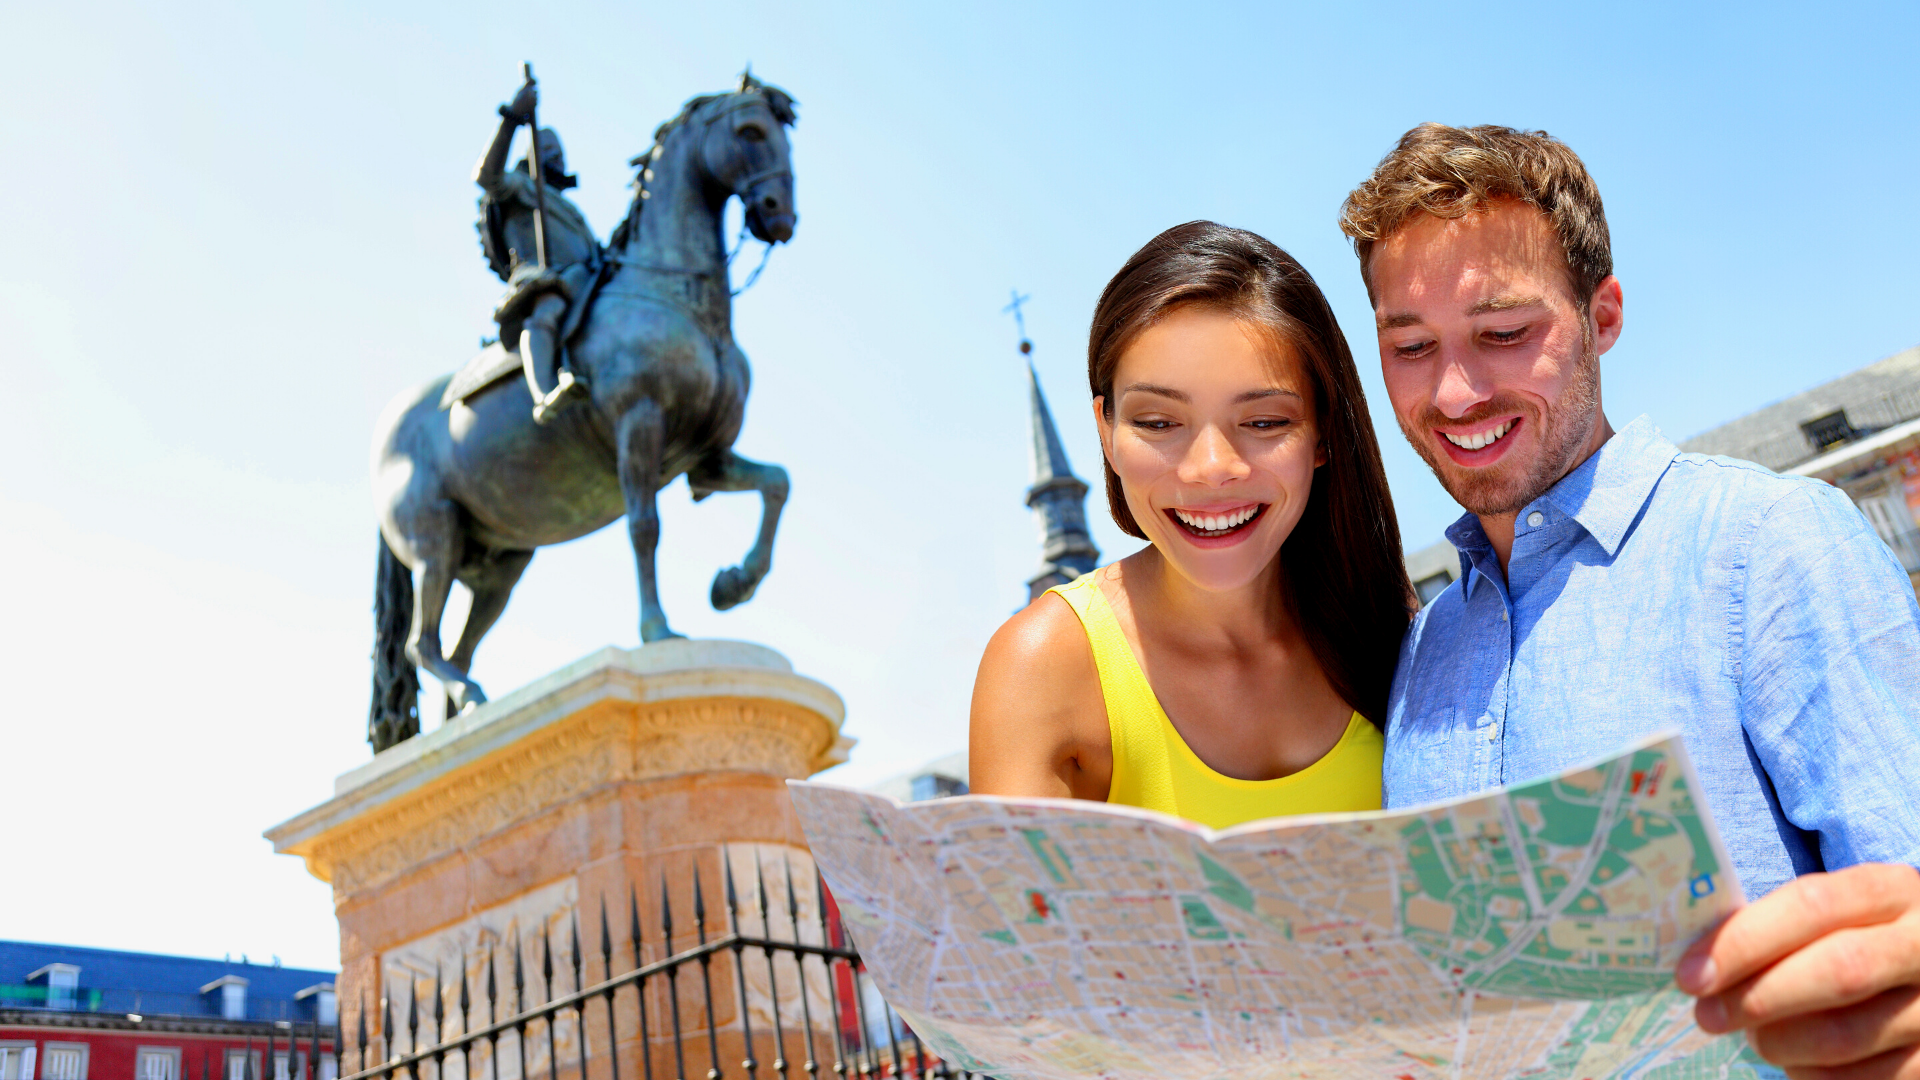 Read: 2021 Europe Travel Plans: Safety First